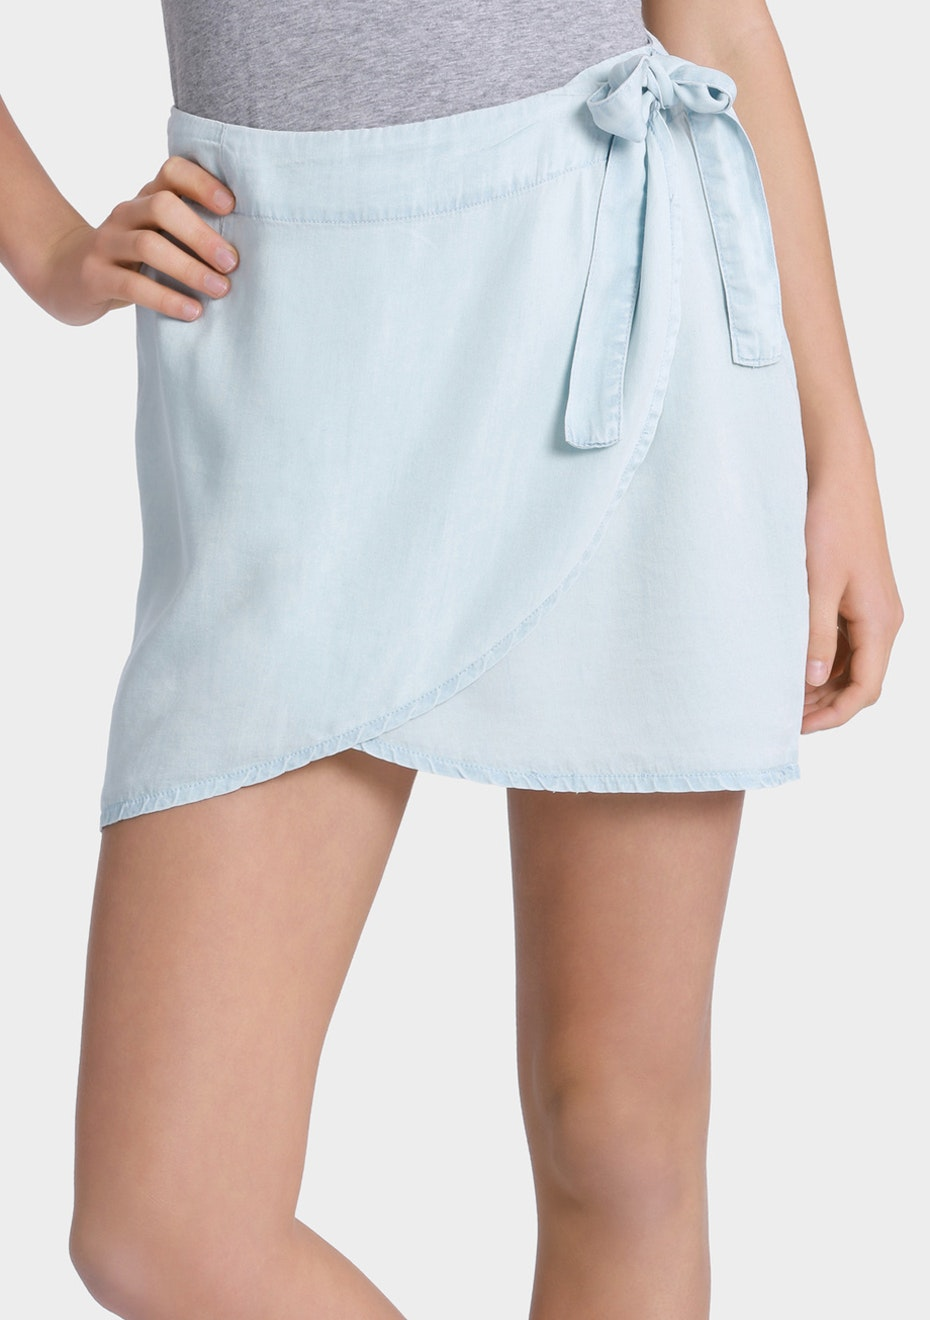 All About Eve - Wrap Me Up Skirt - Chambray